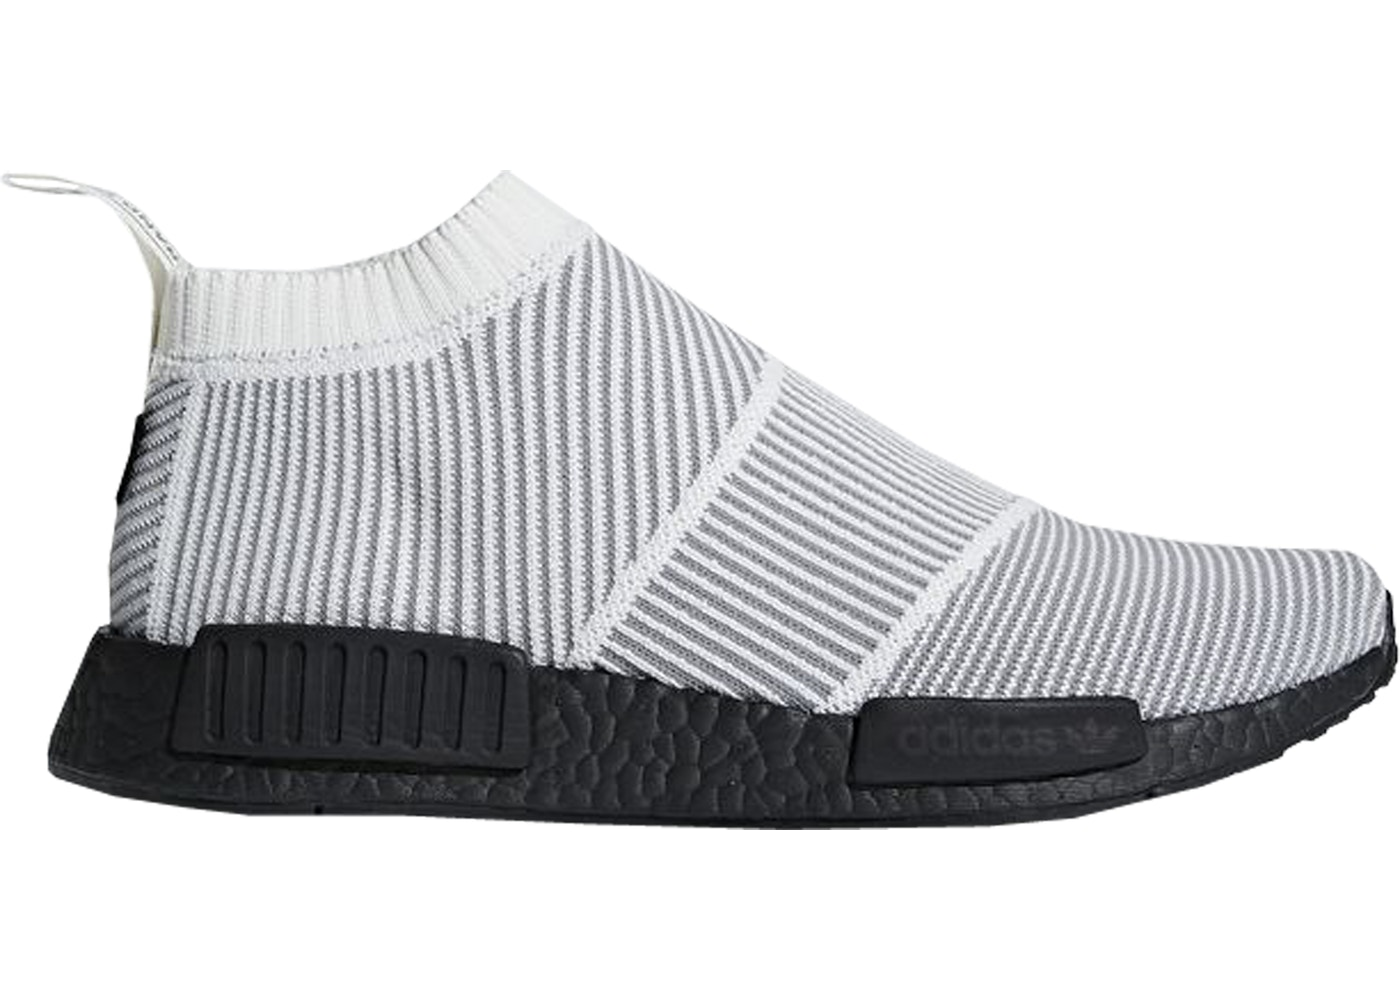 adidas NMD CS1 Gore-tex White - BY9404 7c1c2059302